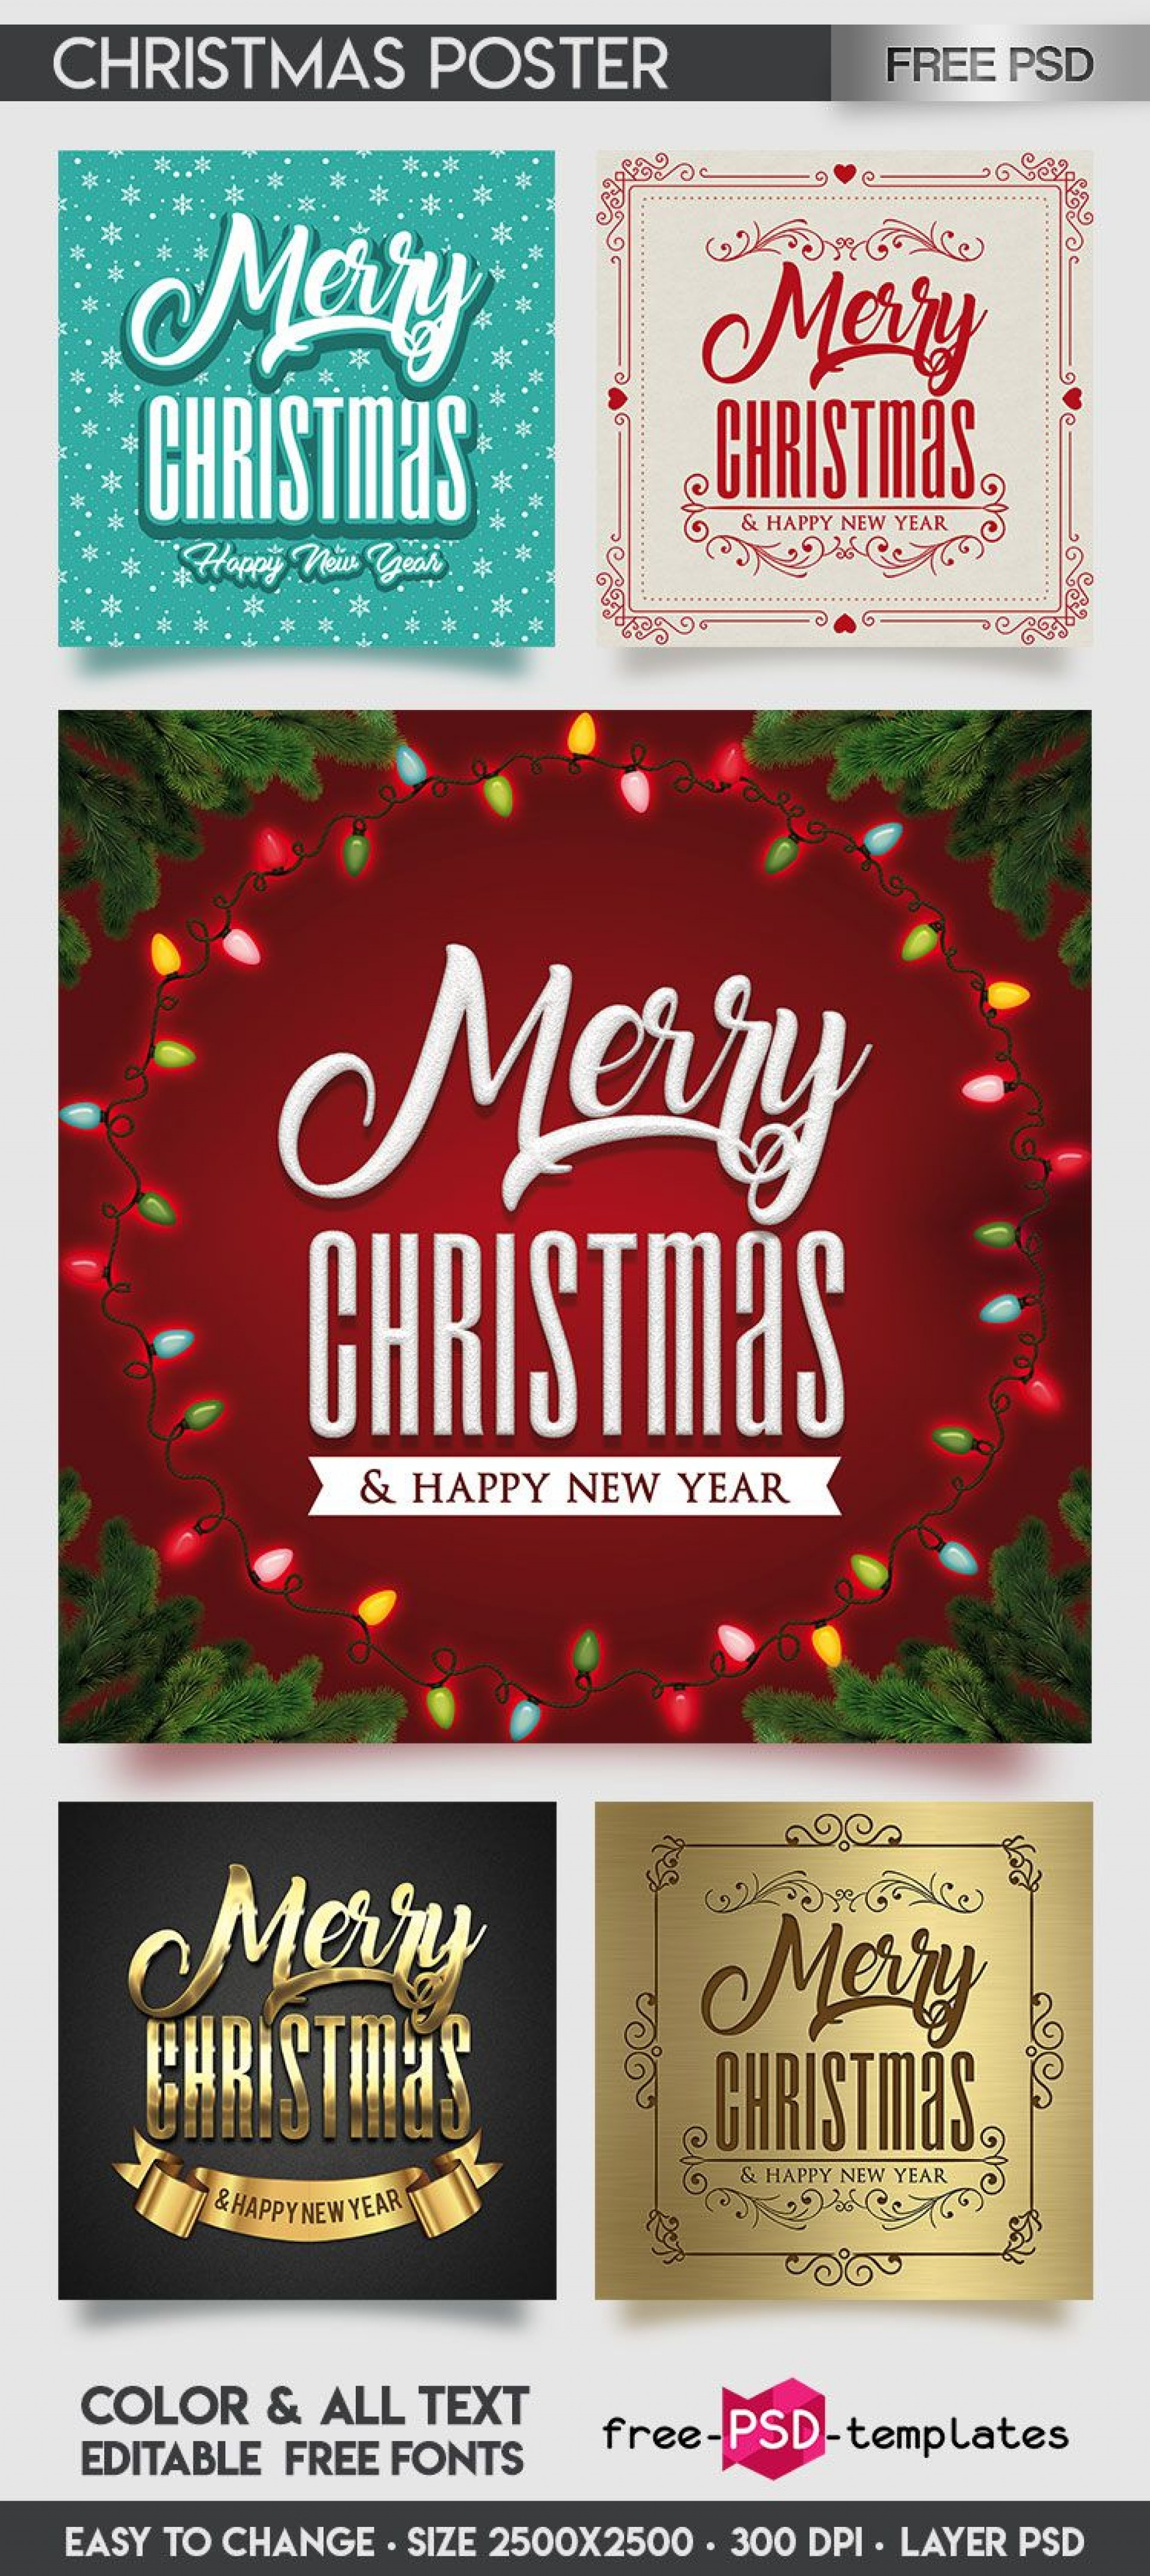 009 Fascinating Free Christma Poster Template Inspiration  Uk Party Download Fair1920